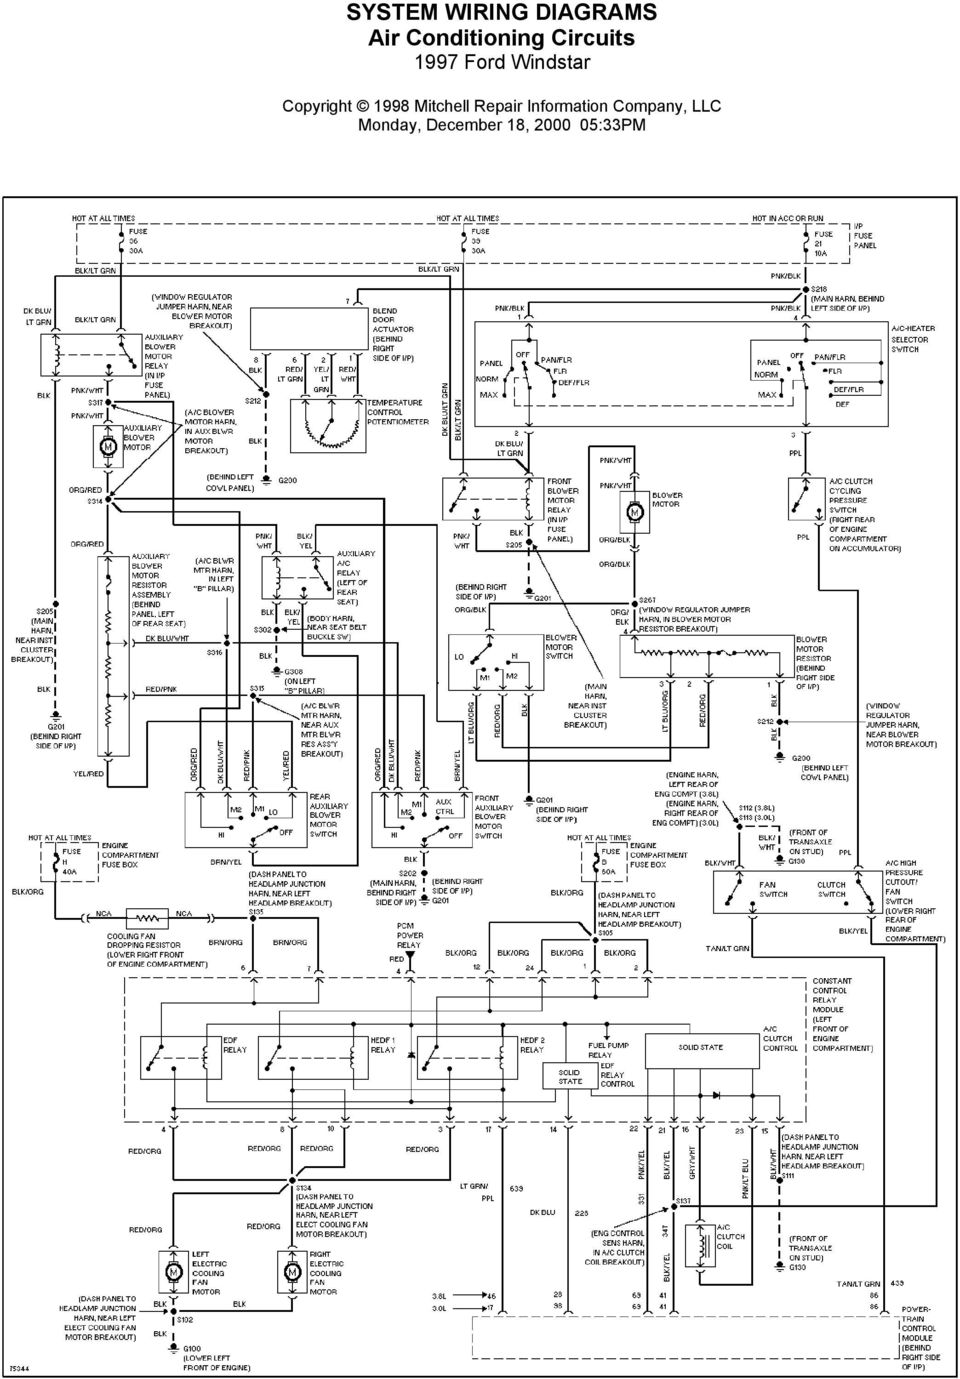 System Wiring Diagrams Air Conditioning Circuits 1997 Ford Windstar 1980 Econoline Diagram